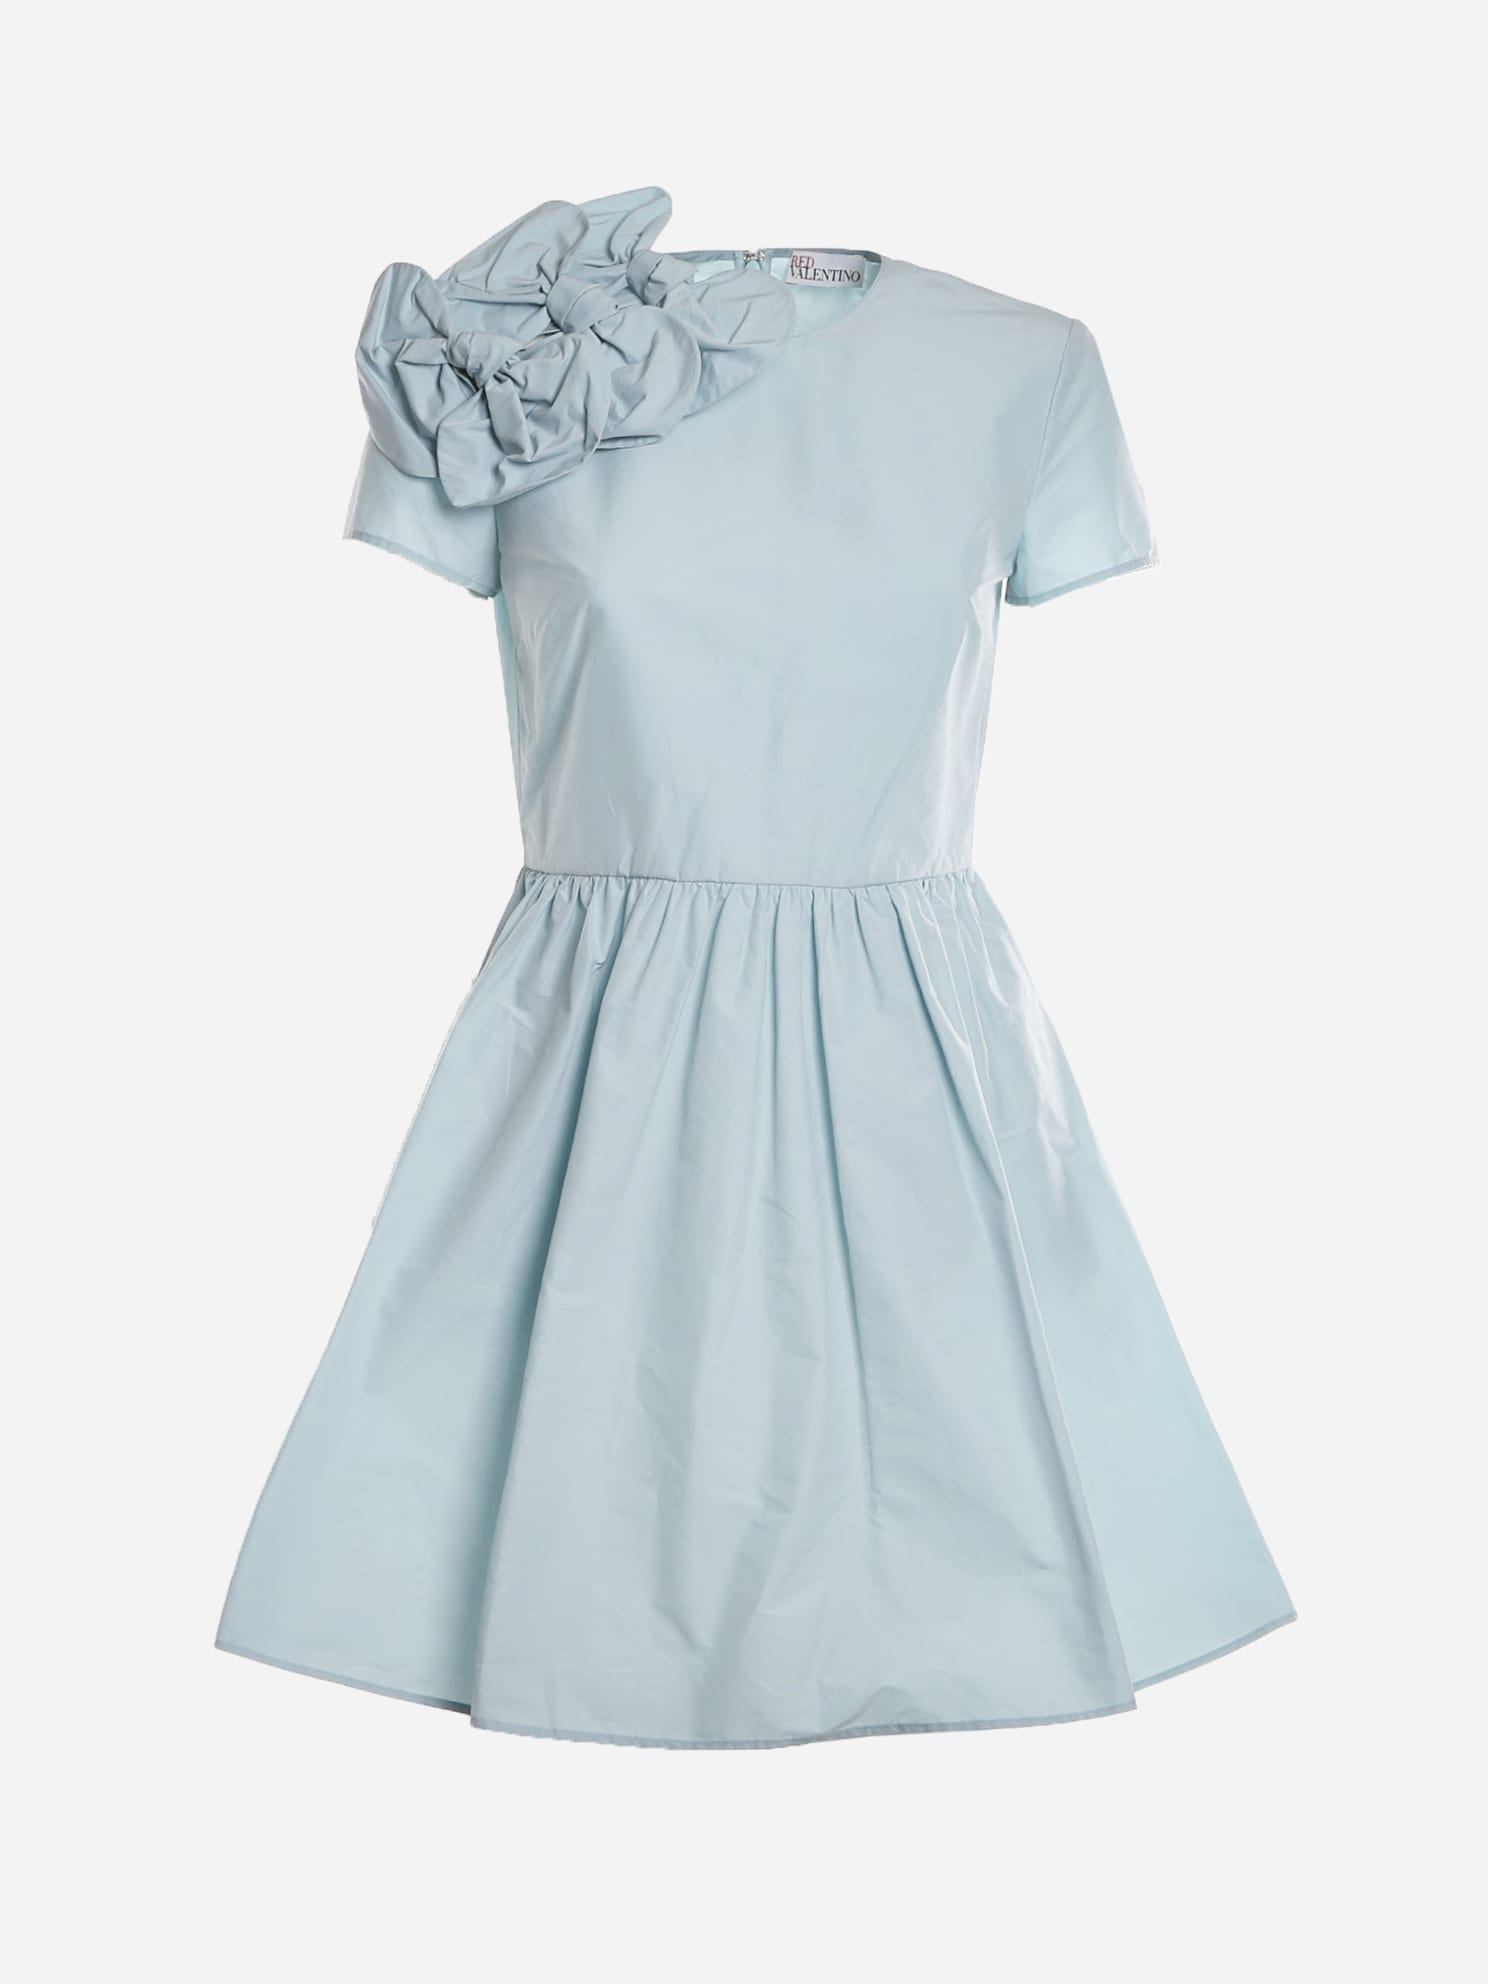 Buy RED Valentino Cotton Blend Dress With Bows Detail online, shop RED Valentino with free shipping